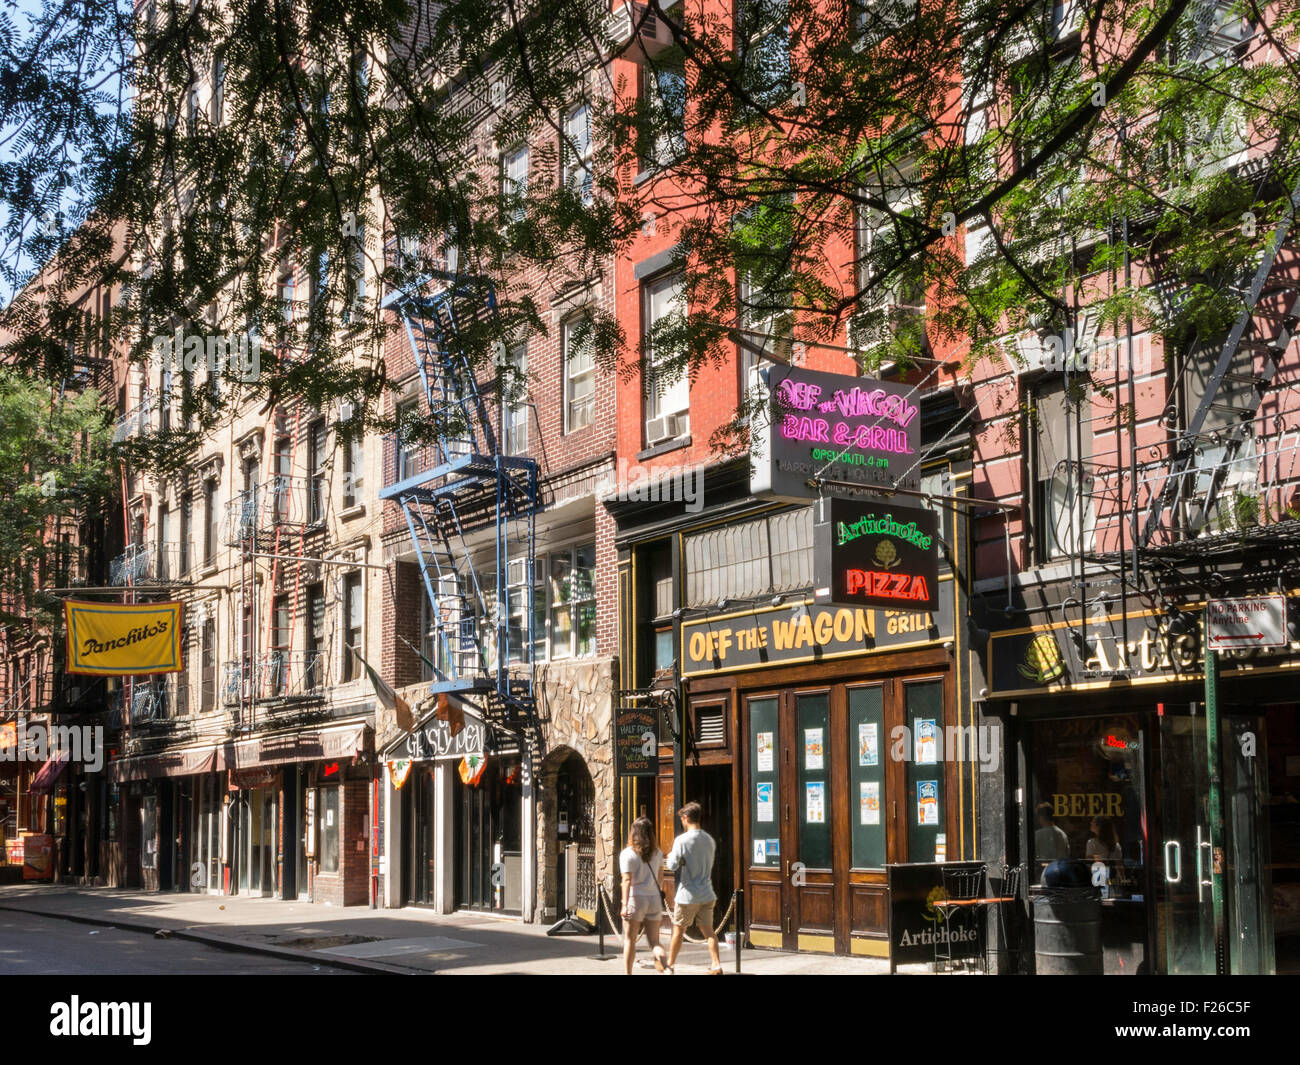 Macdougal street greenwich village nyc stock photo for Appartamenti greenwich village new york